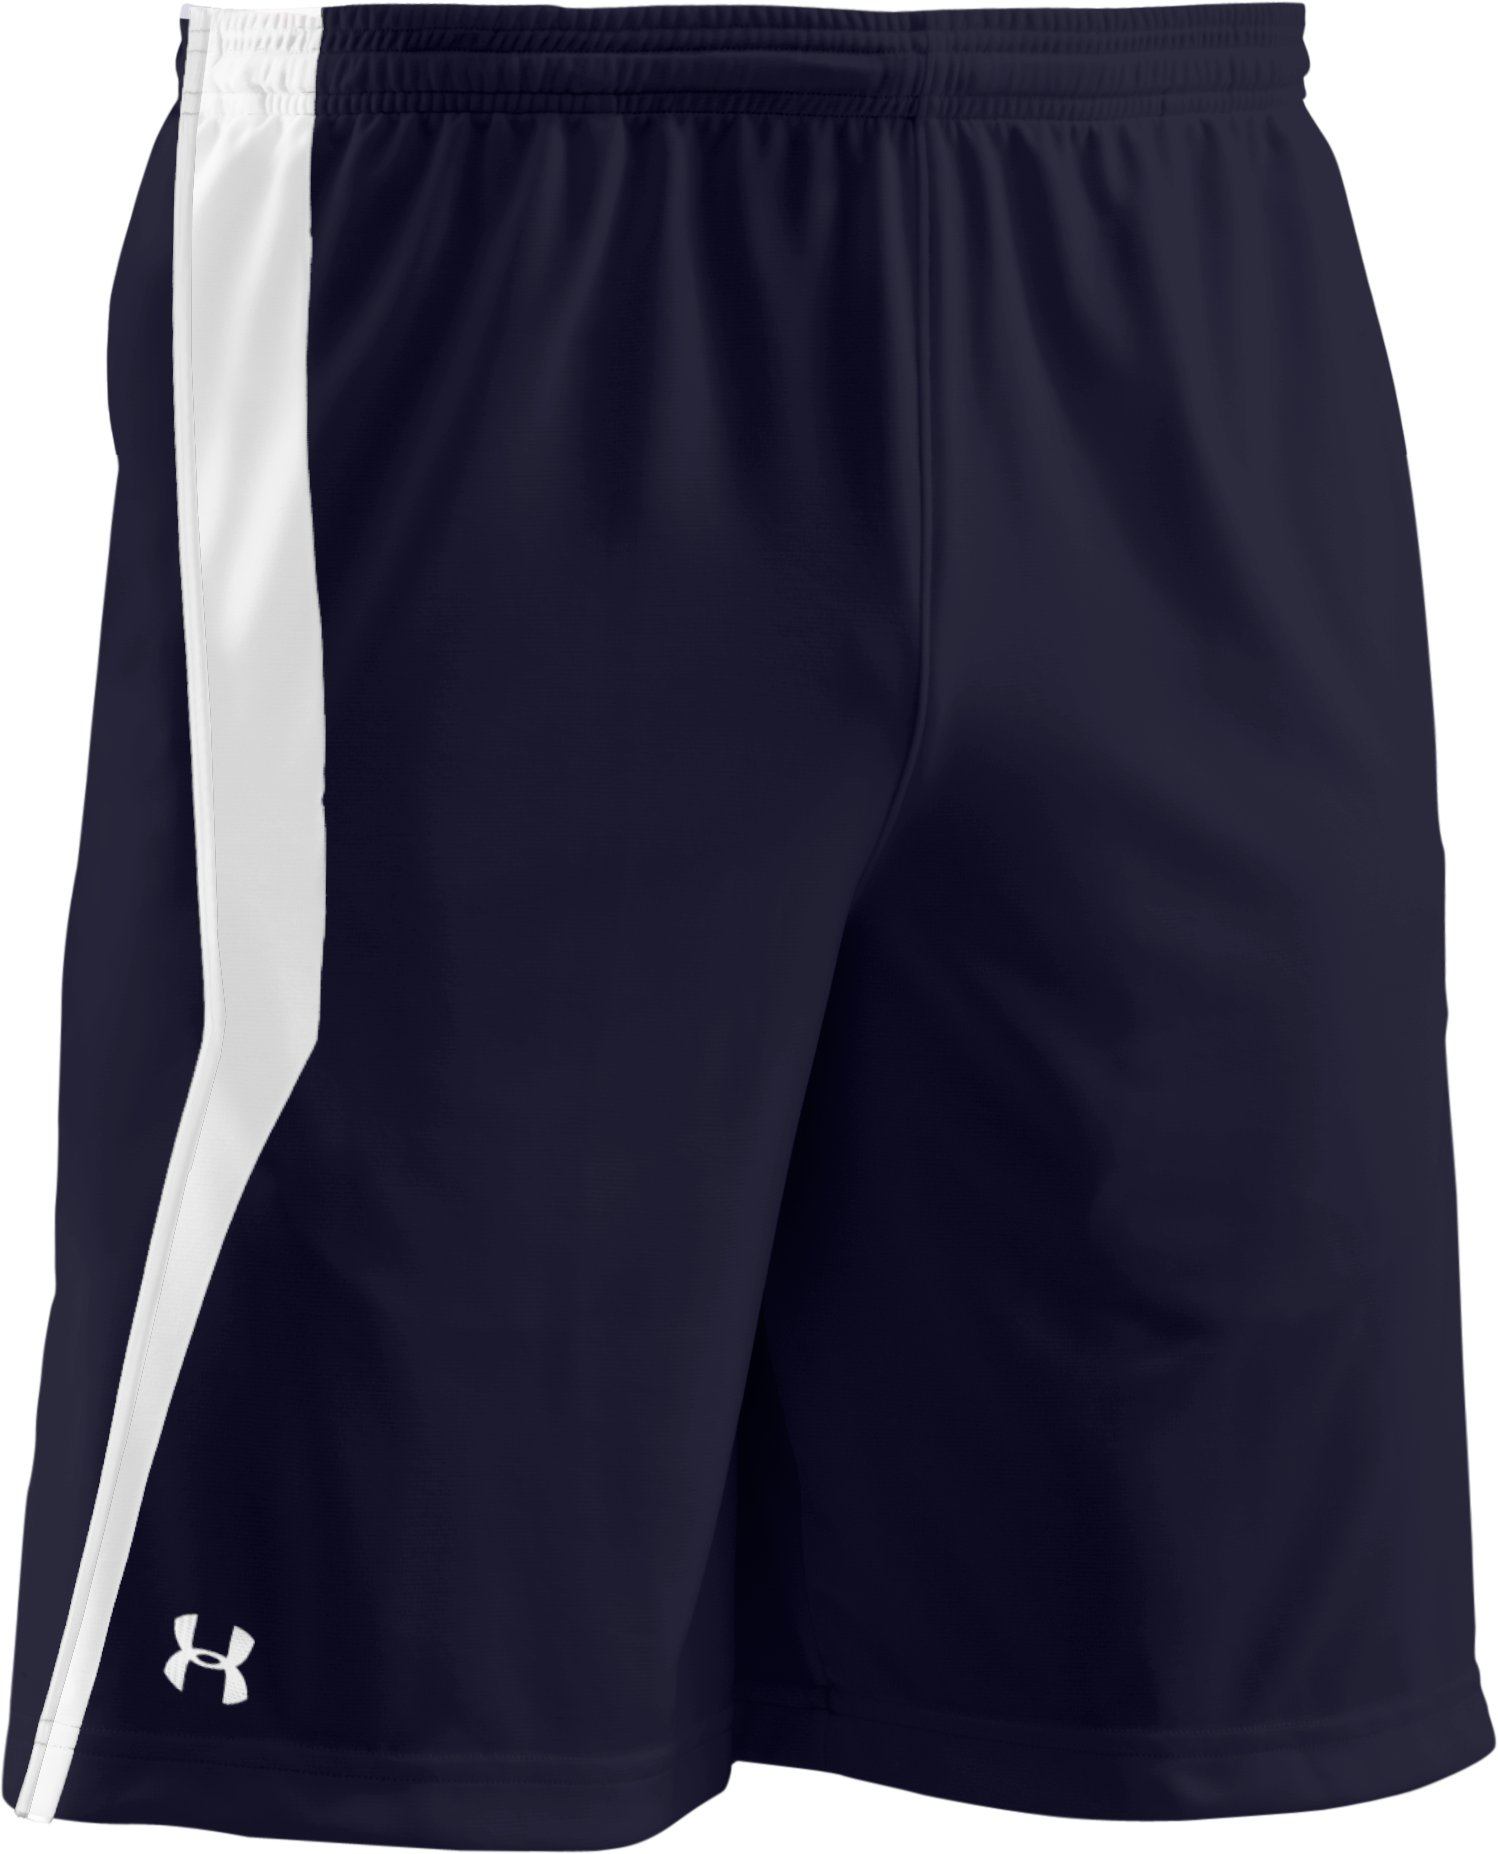 "Men's UA Multiplier 10"" Shorts, Midnight Navy, undefined"